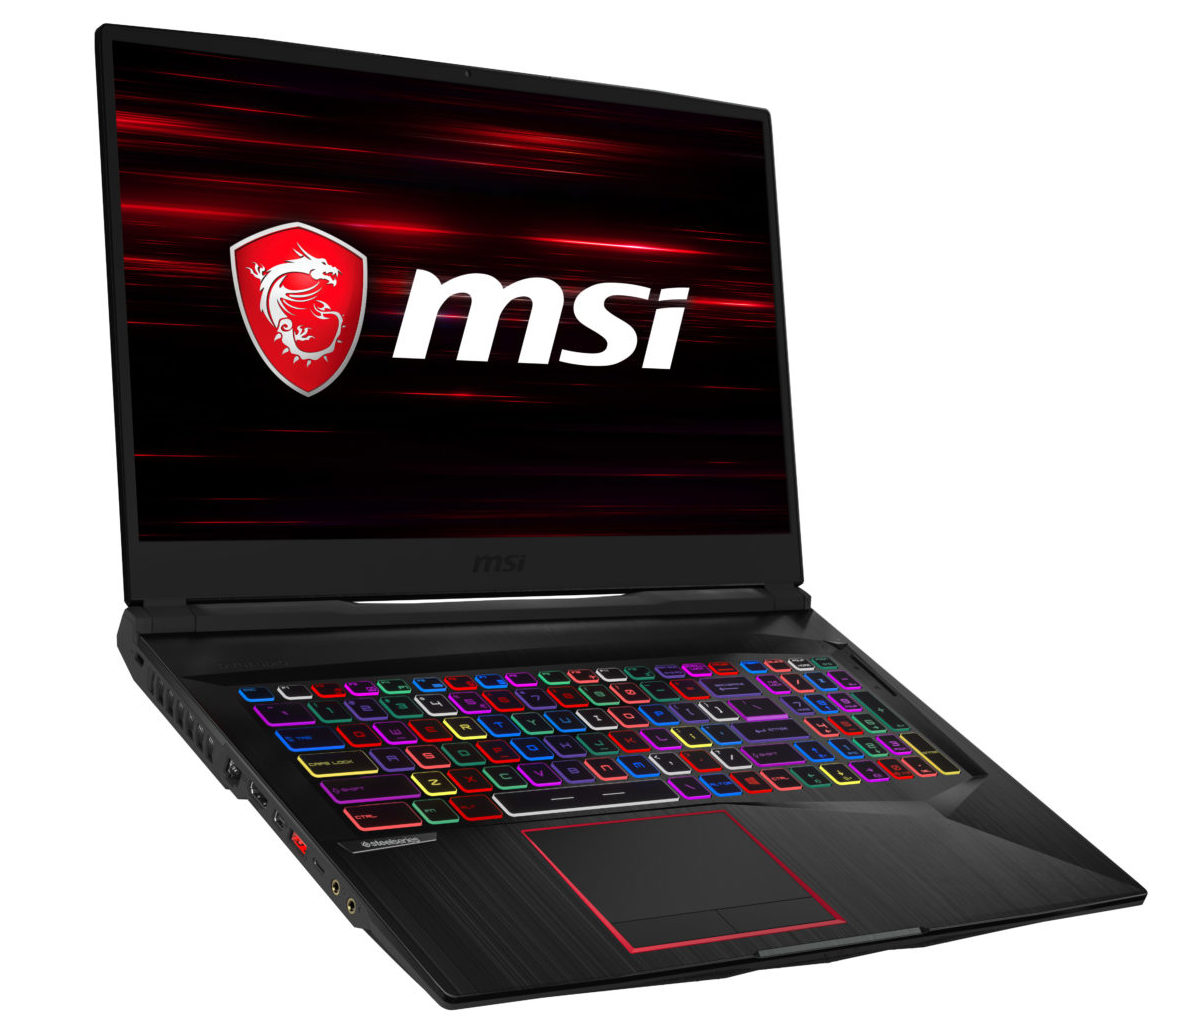 E' firmato MSI il gaming laptop con display bezel-less da 17″ e grafica NVIDIA GeForce GTX 1070